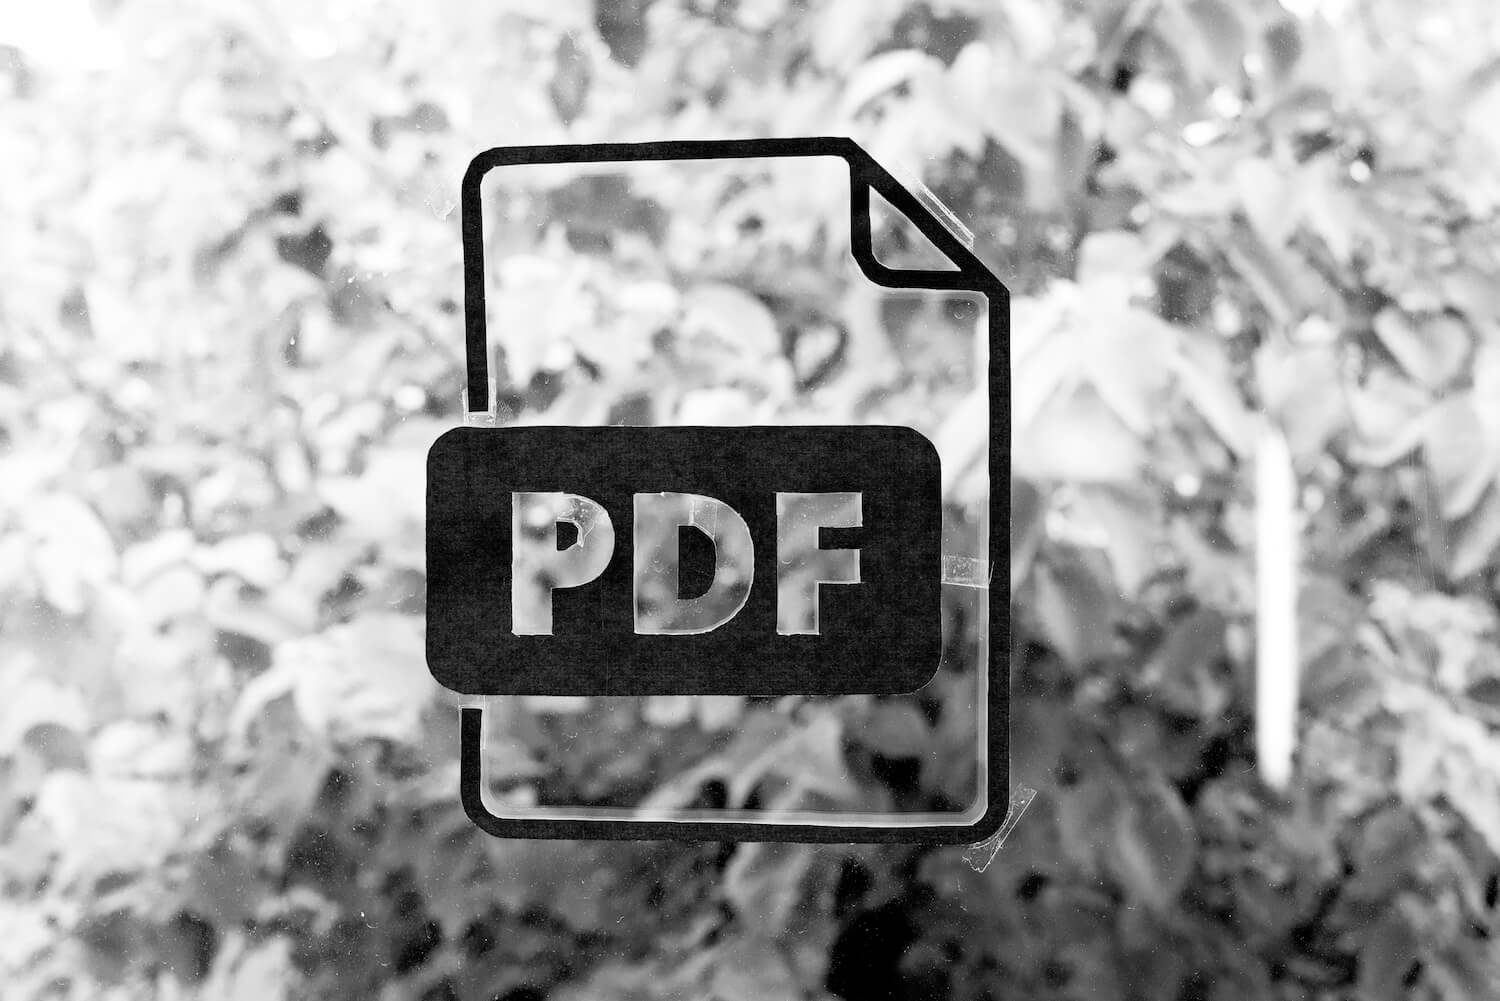 Exporting Transparent PDFs from Adobe Illustrator - Tips & Tricks